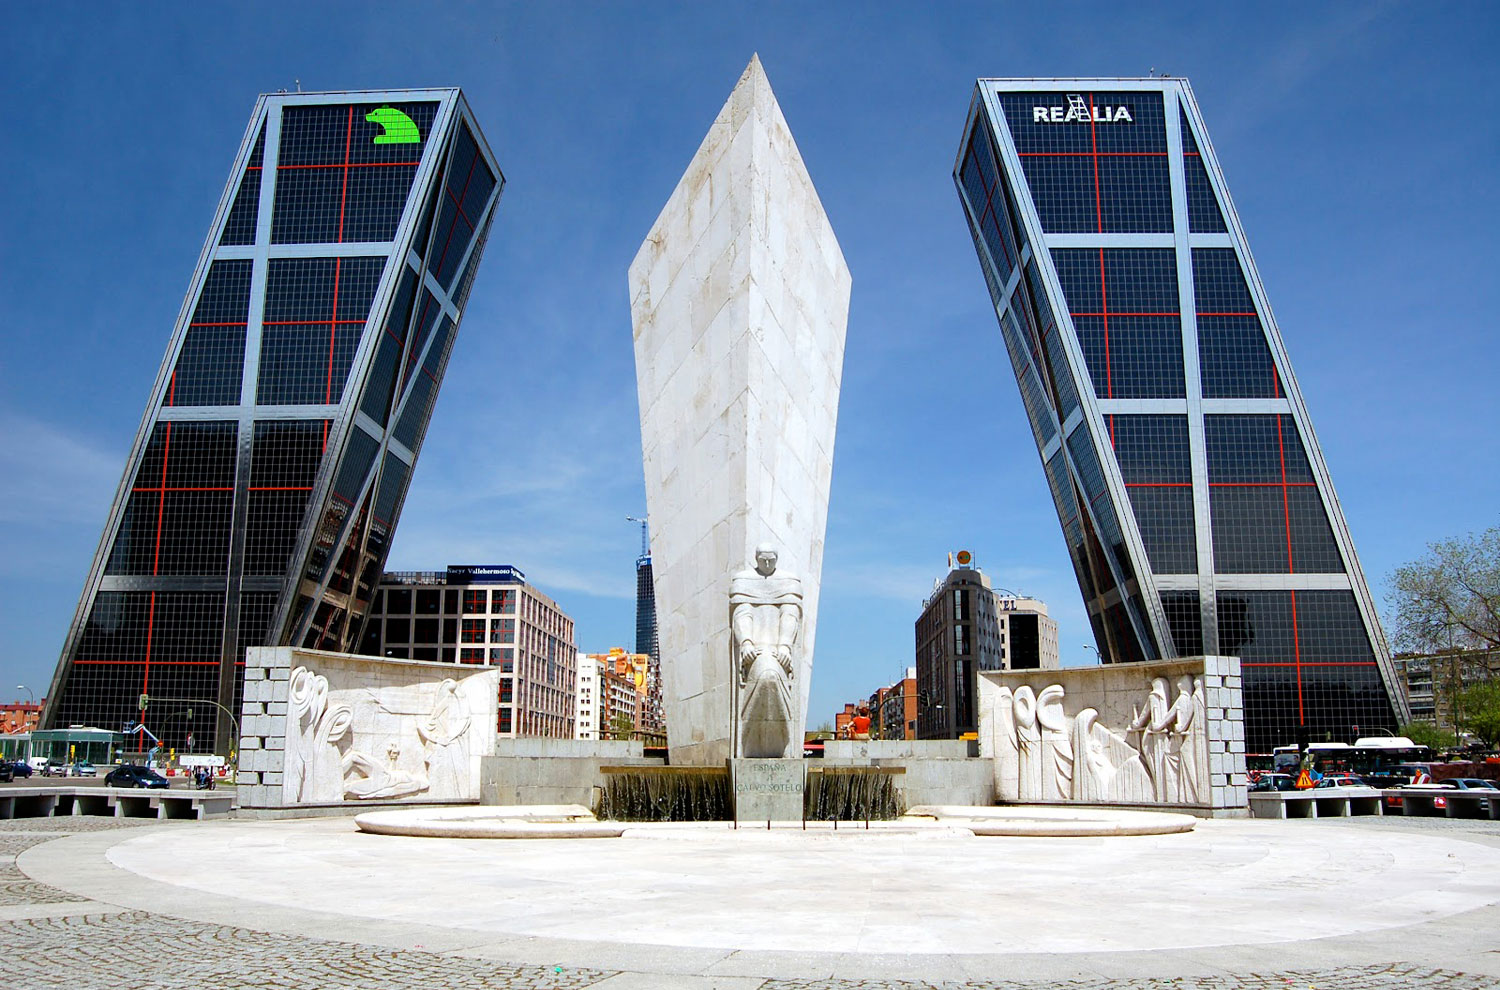 KIO Towers at Puerta Europa